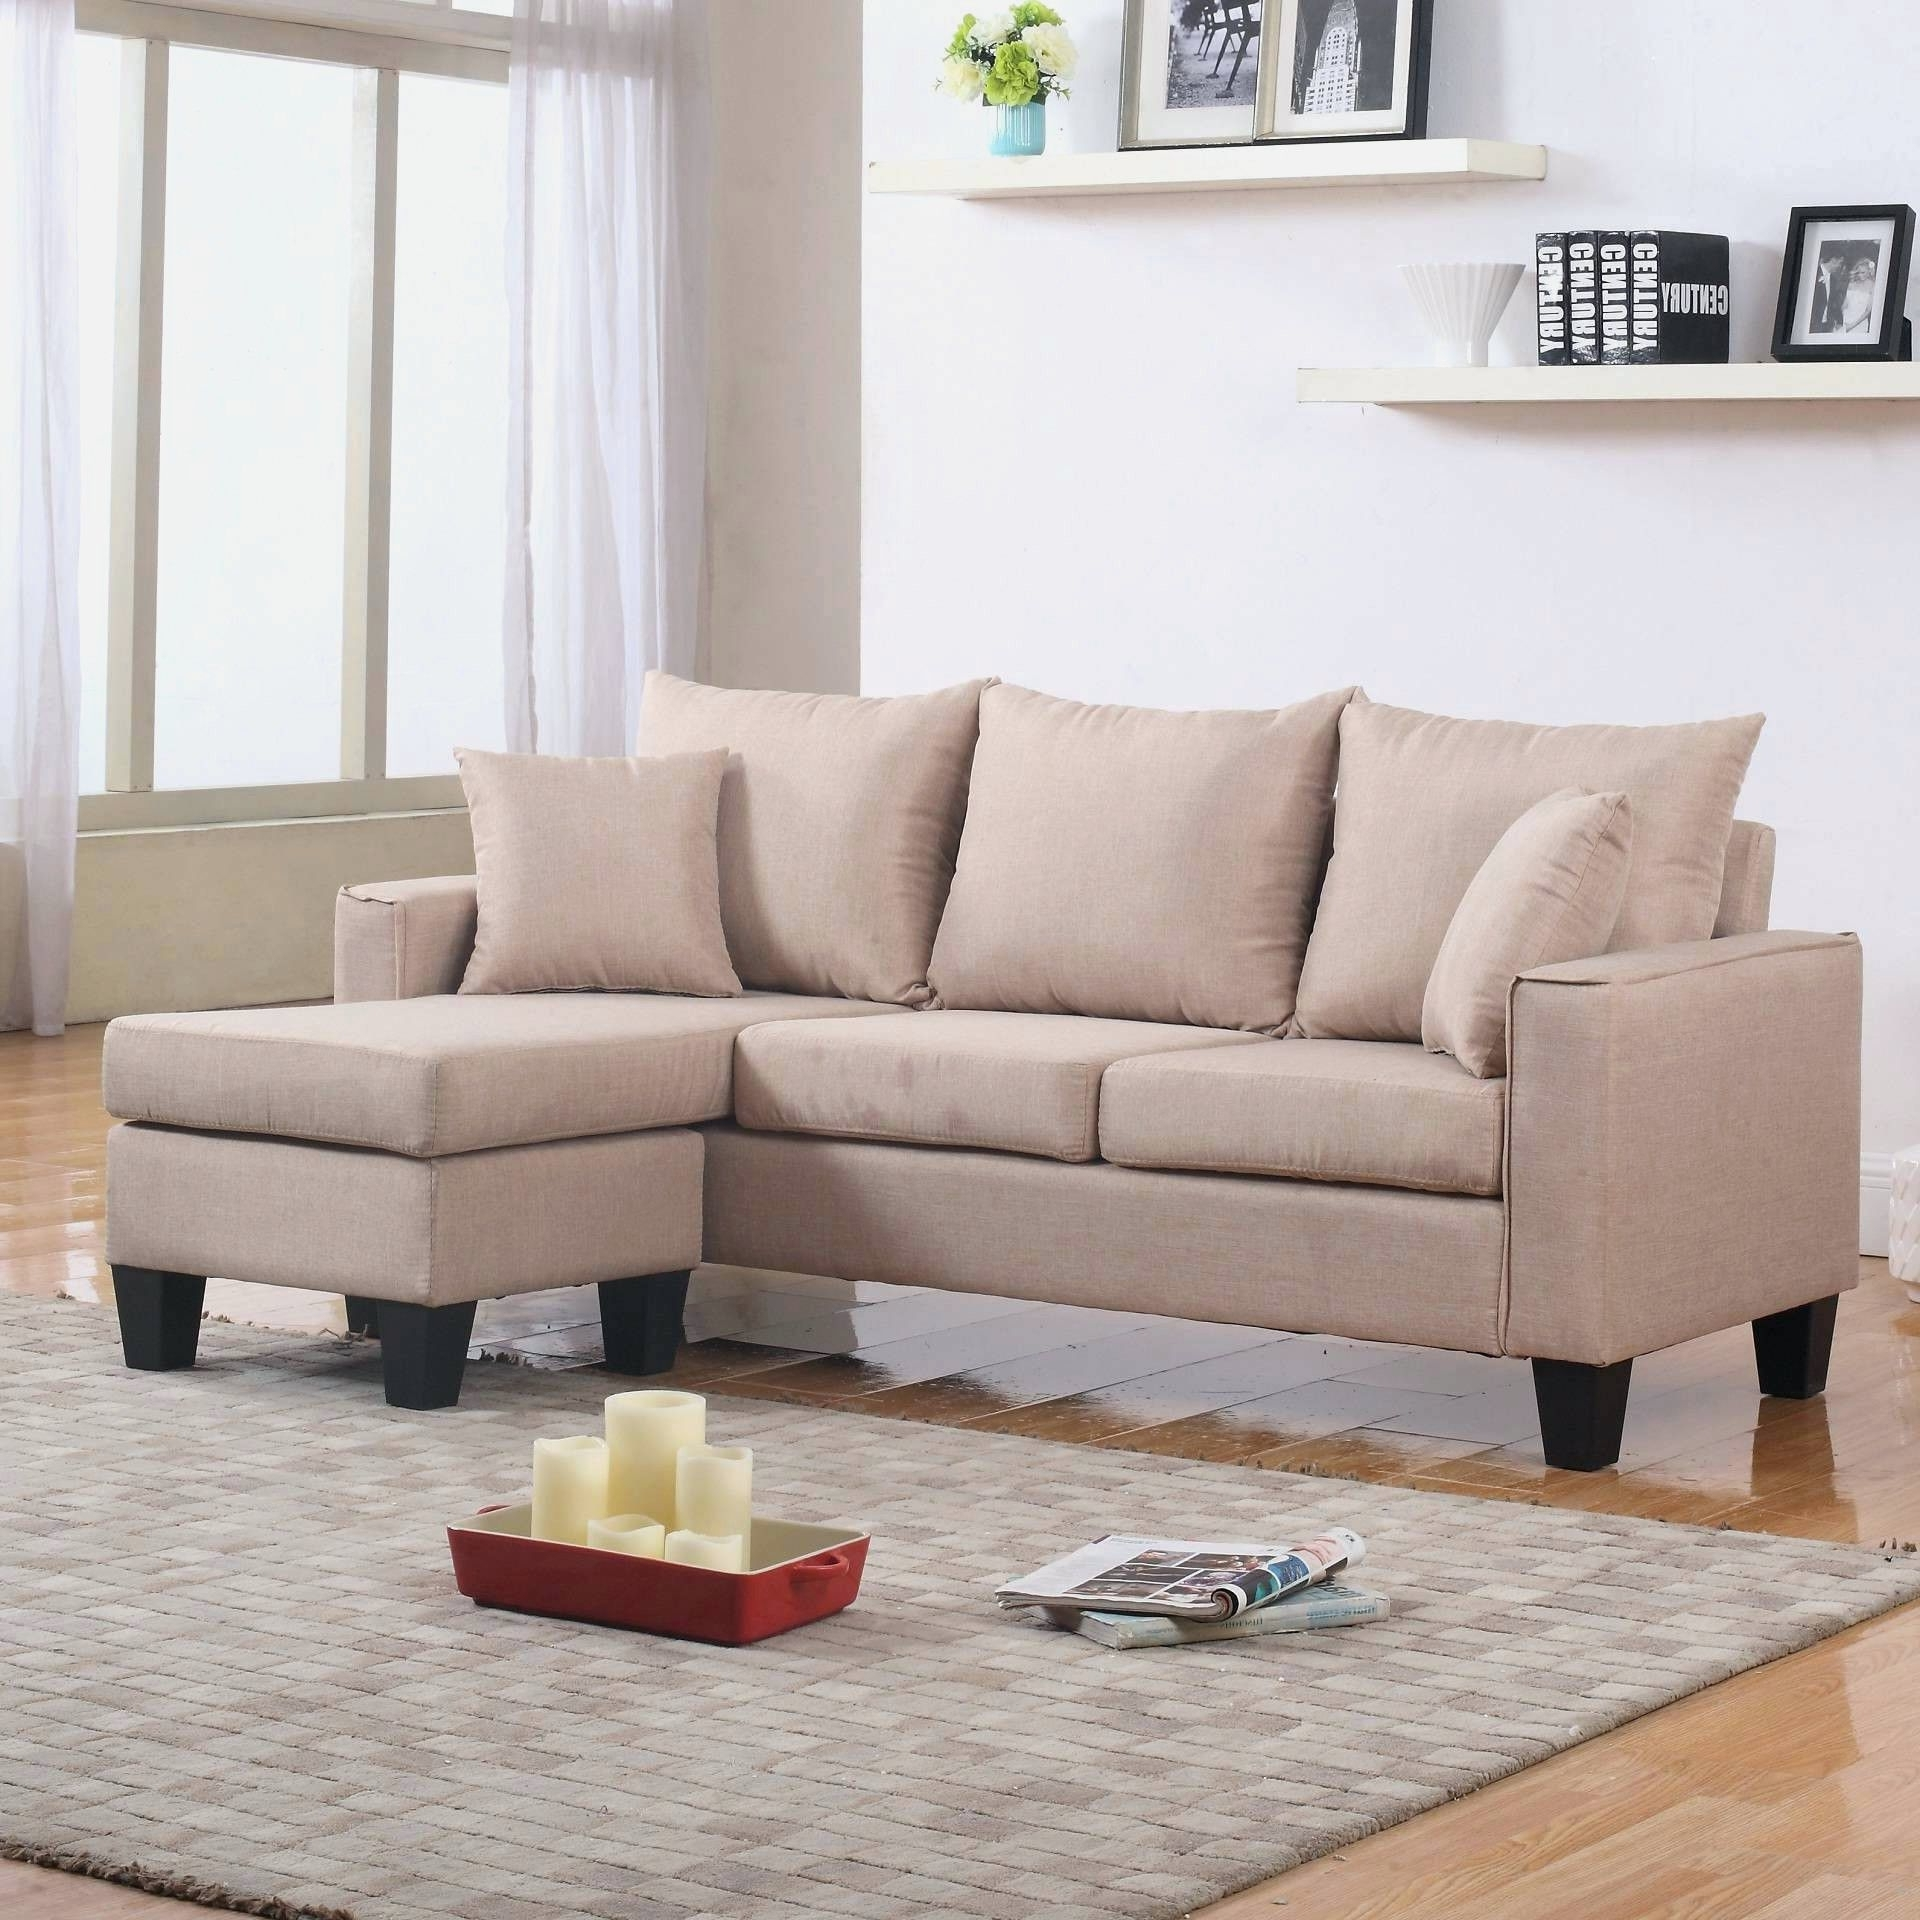 Joss And Main Sectional Sofas Pertaining To Most Popular Fascinating Cosmopolitan In And To Large Size Along With Backs (View 11 of 15)